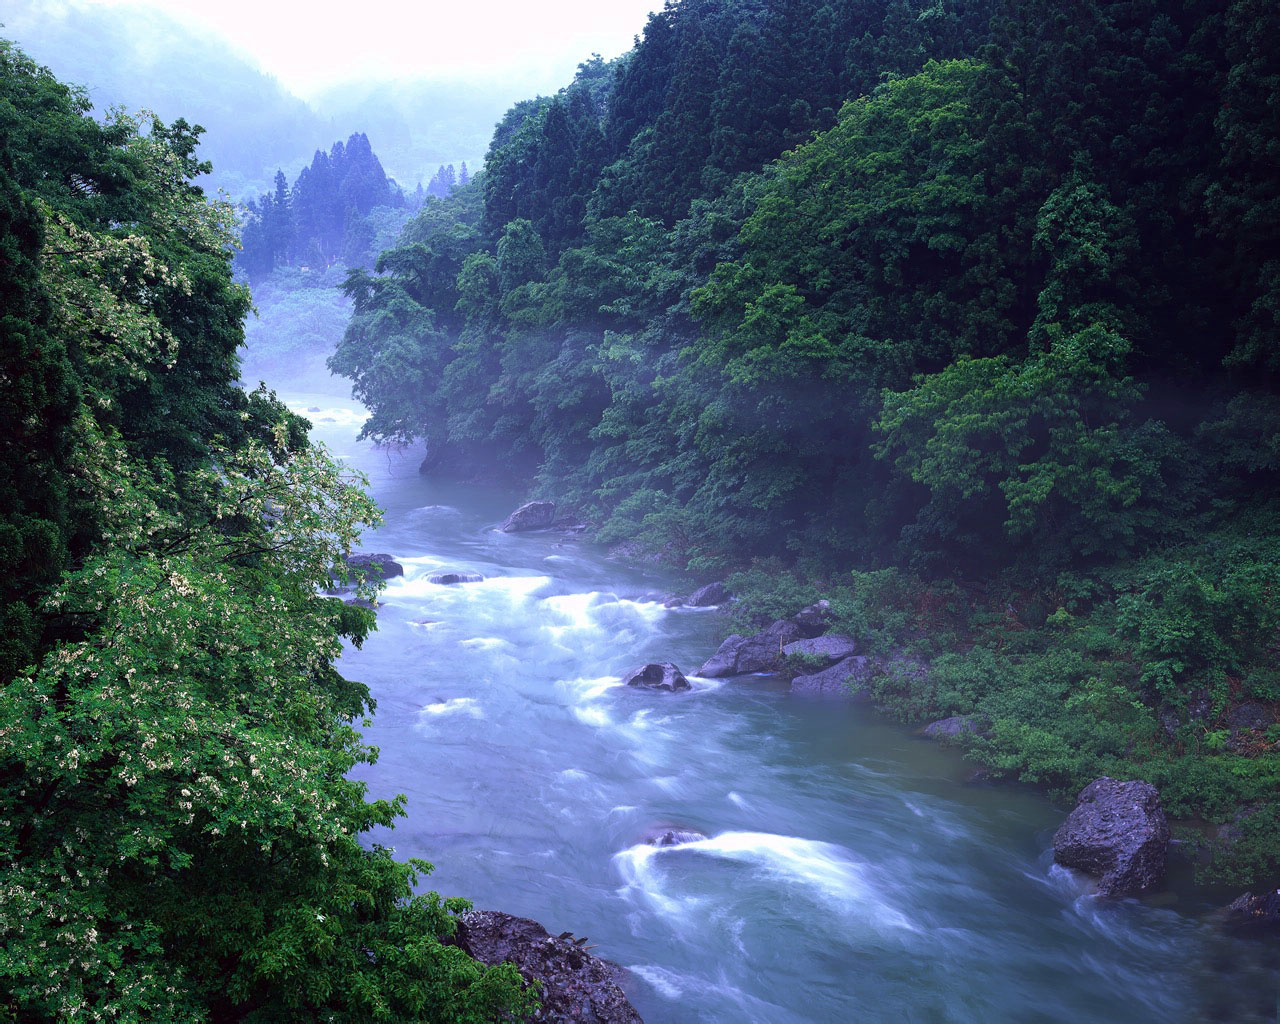 flowing river wallpaper - photo #12